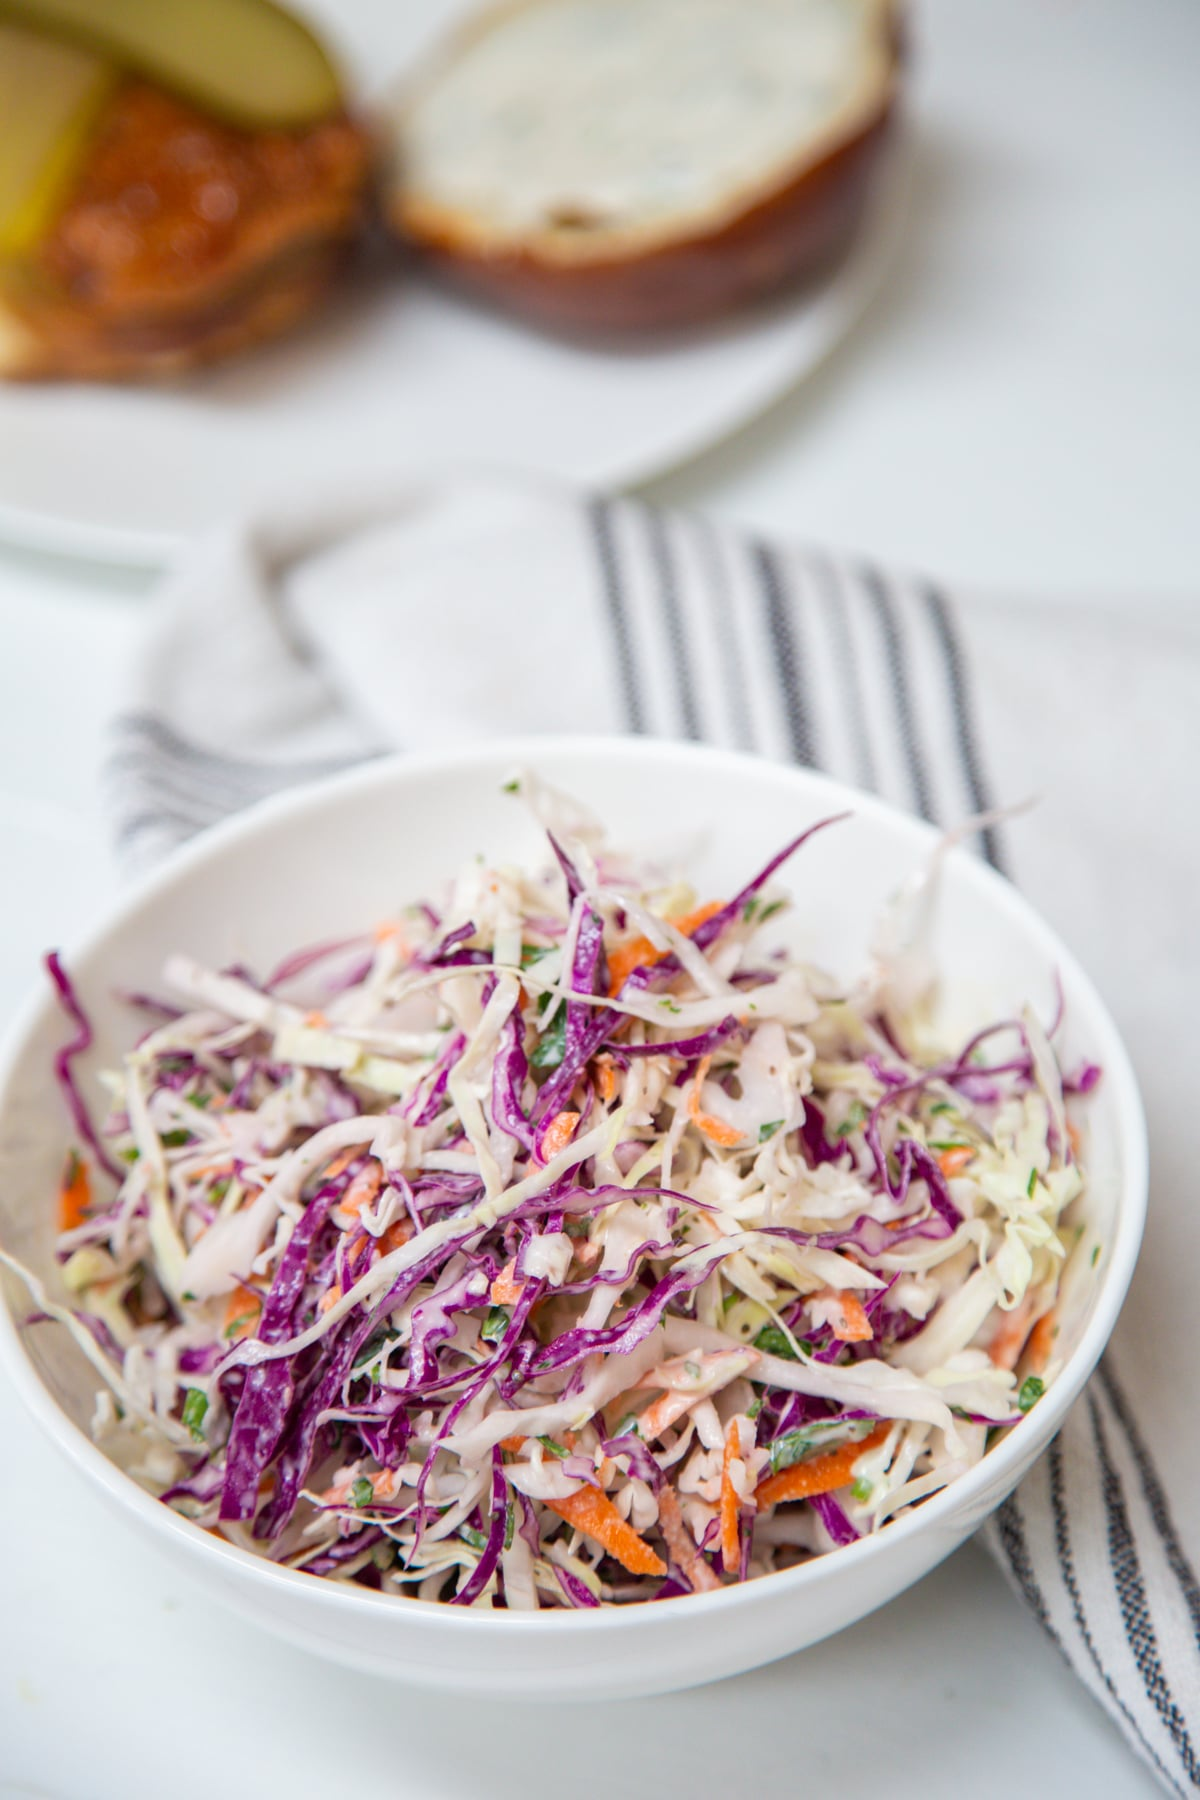 Red and green cabbage creamy coleslaw in a white bowl next to a white and black striped towel with a bun in the background.